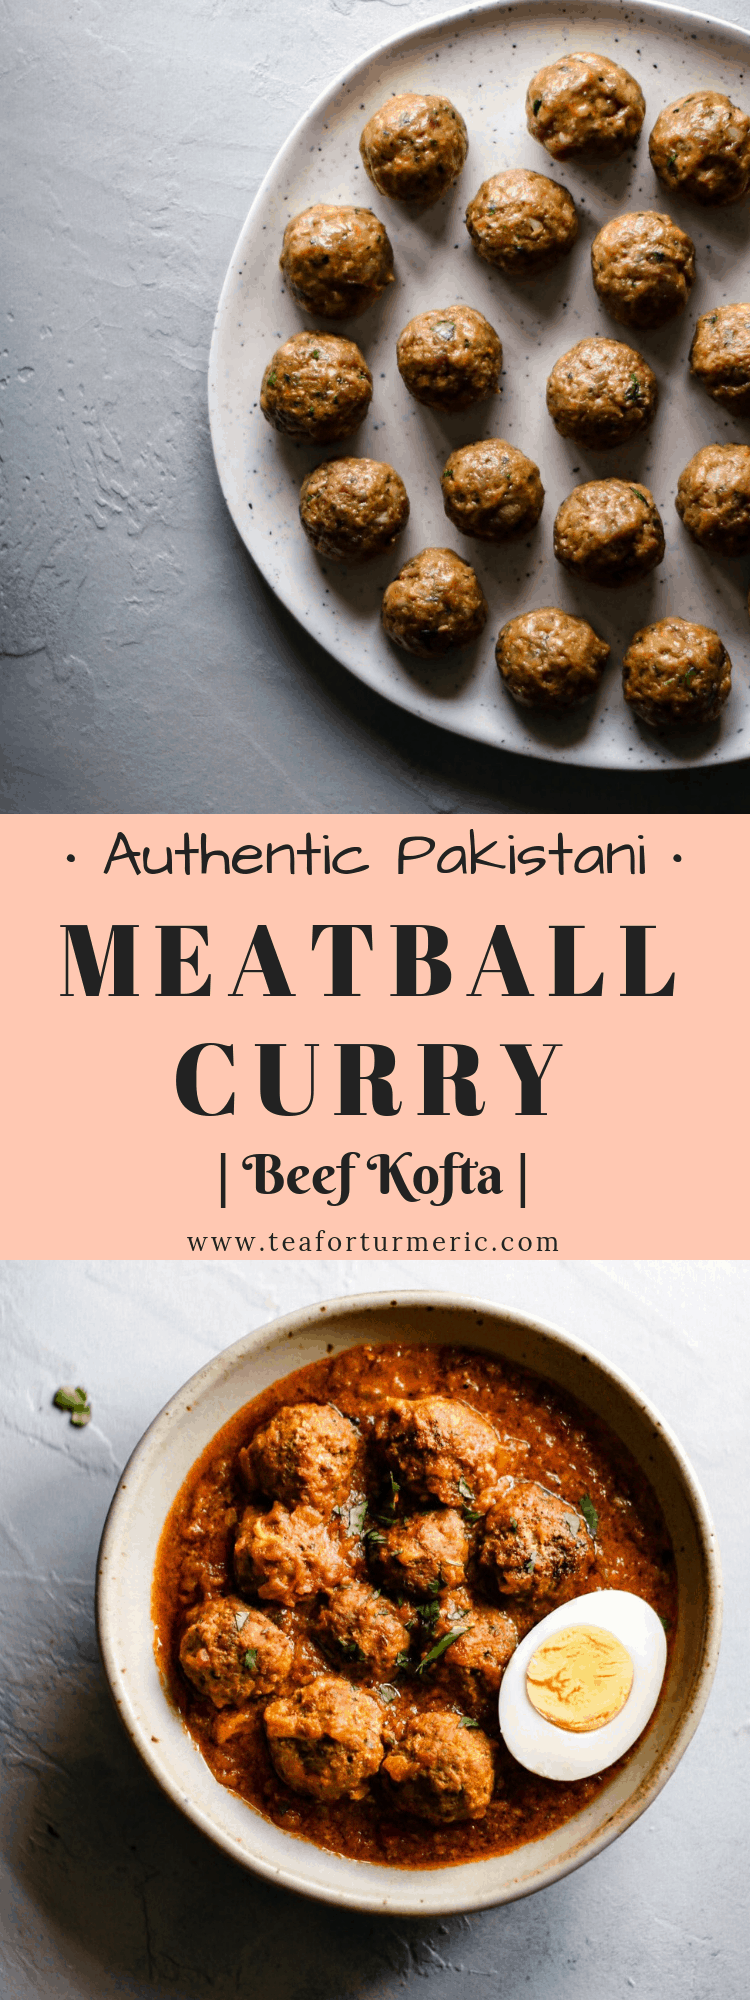 Beef Kofta Curry, or simply kofte, is a traditional Pakistani curry made of tender meatballs simmered in a spicy, flavorful sauce. This recipe has all the authentic flavor of old-fashioned kofte but it\'s made in an easier, more approachable way.